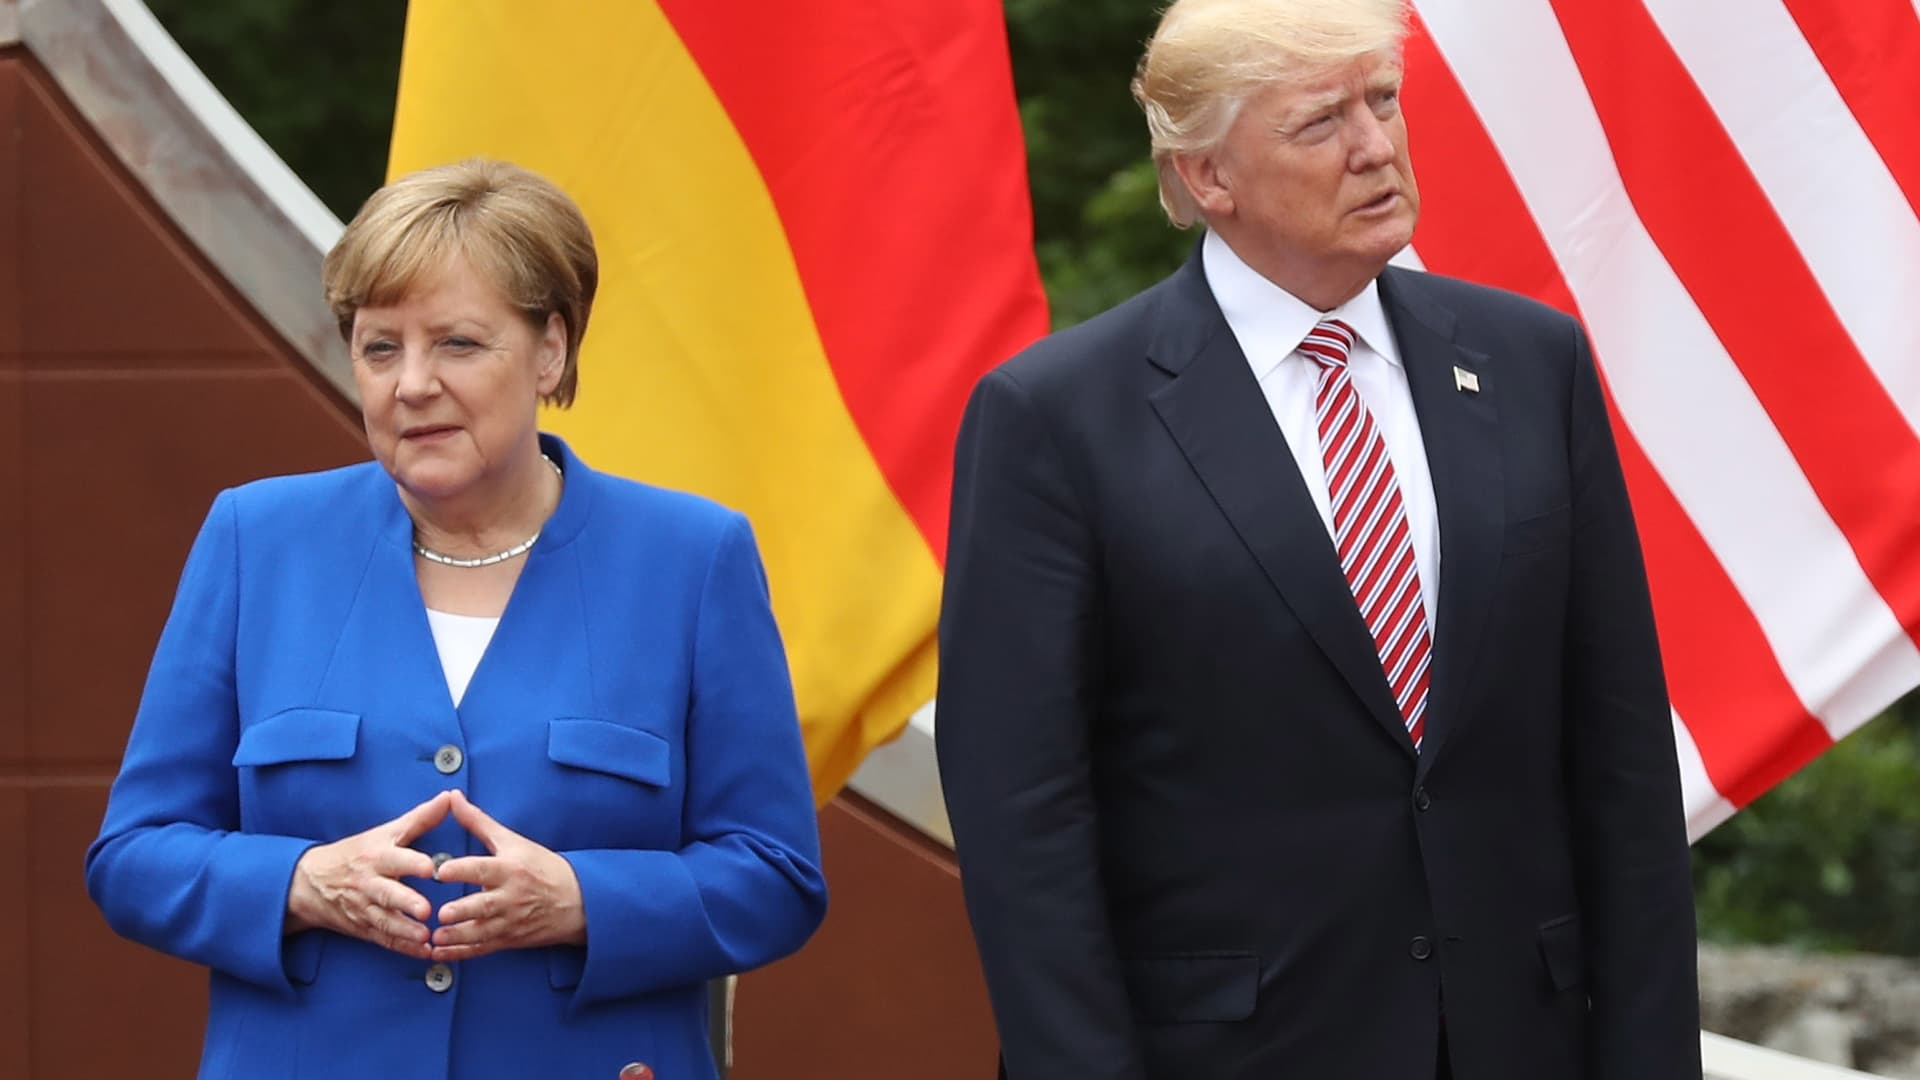 German Chancellor Angela Merkel and U.S. President Donald Trump arrive for a group photo at a G7 summit on May 26, 2017 in Taormina, Italy.